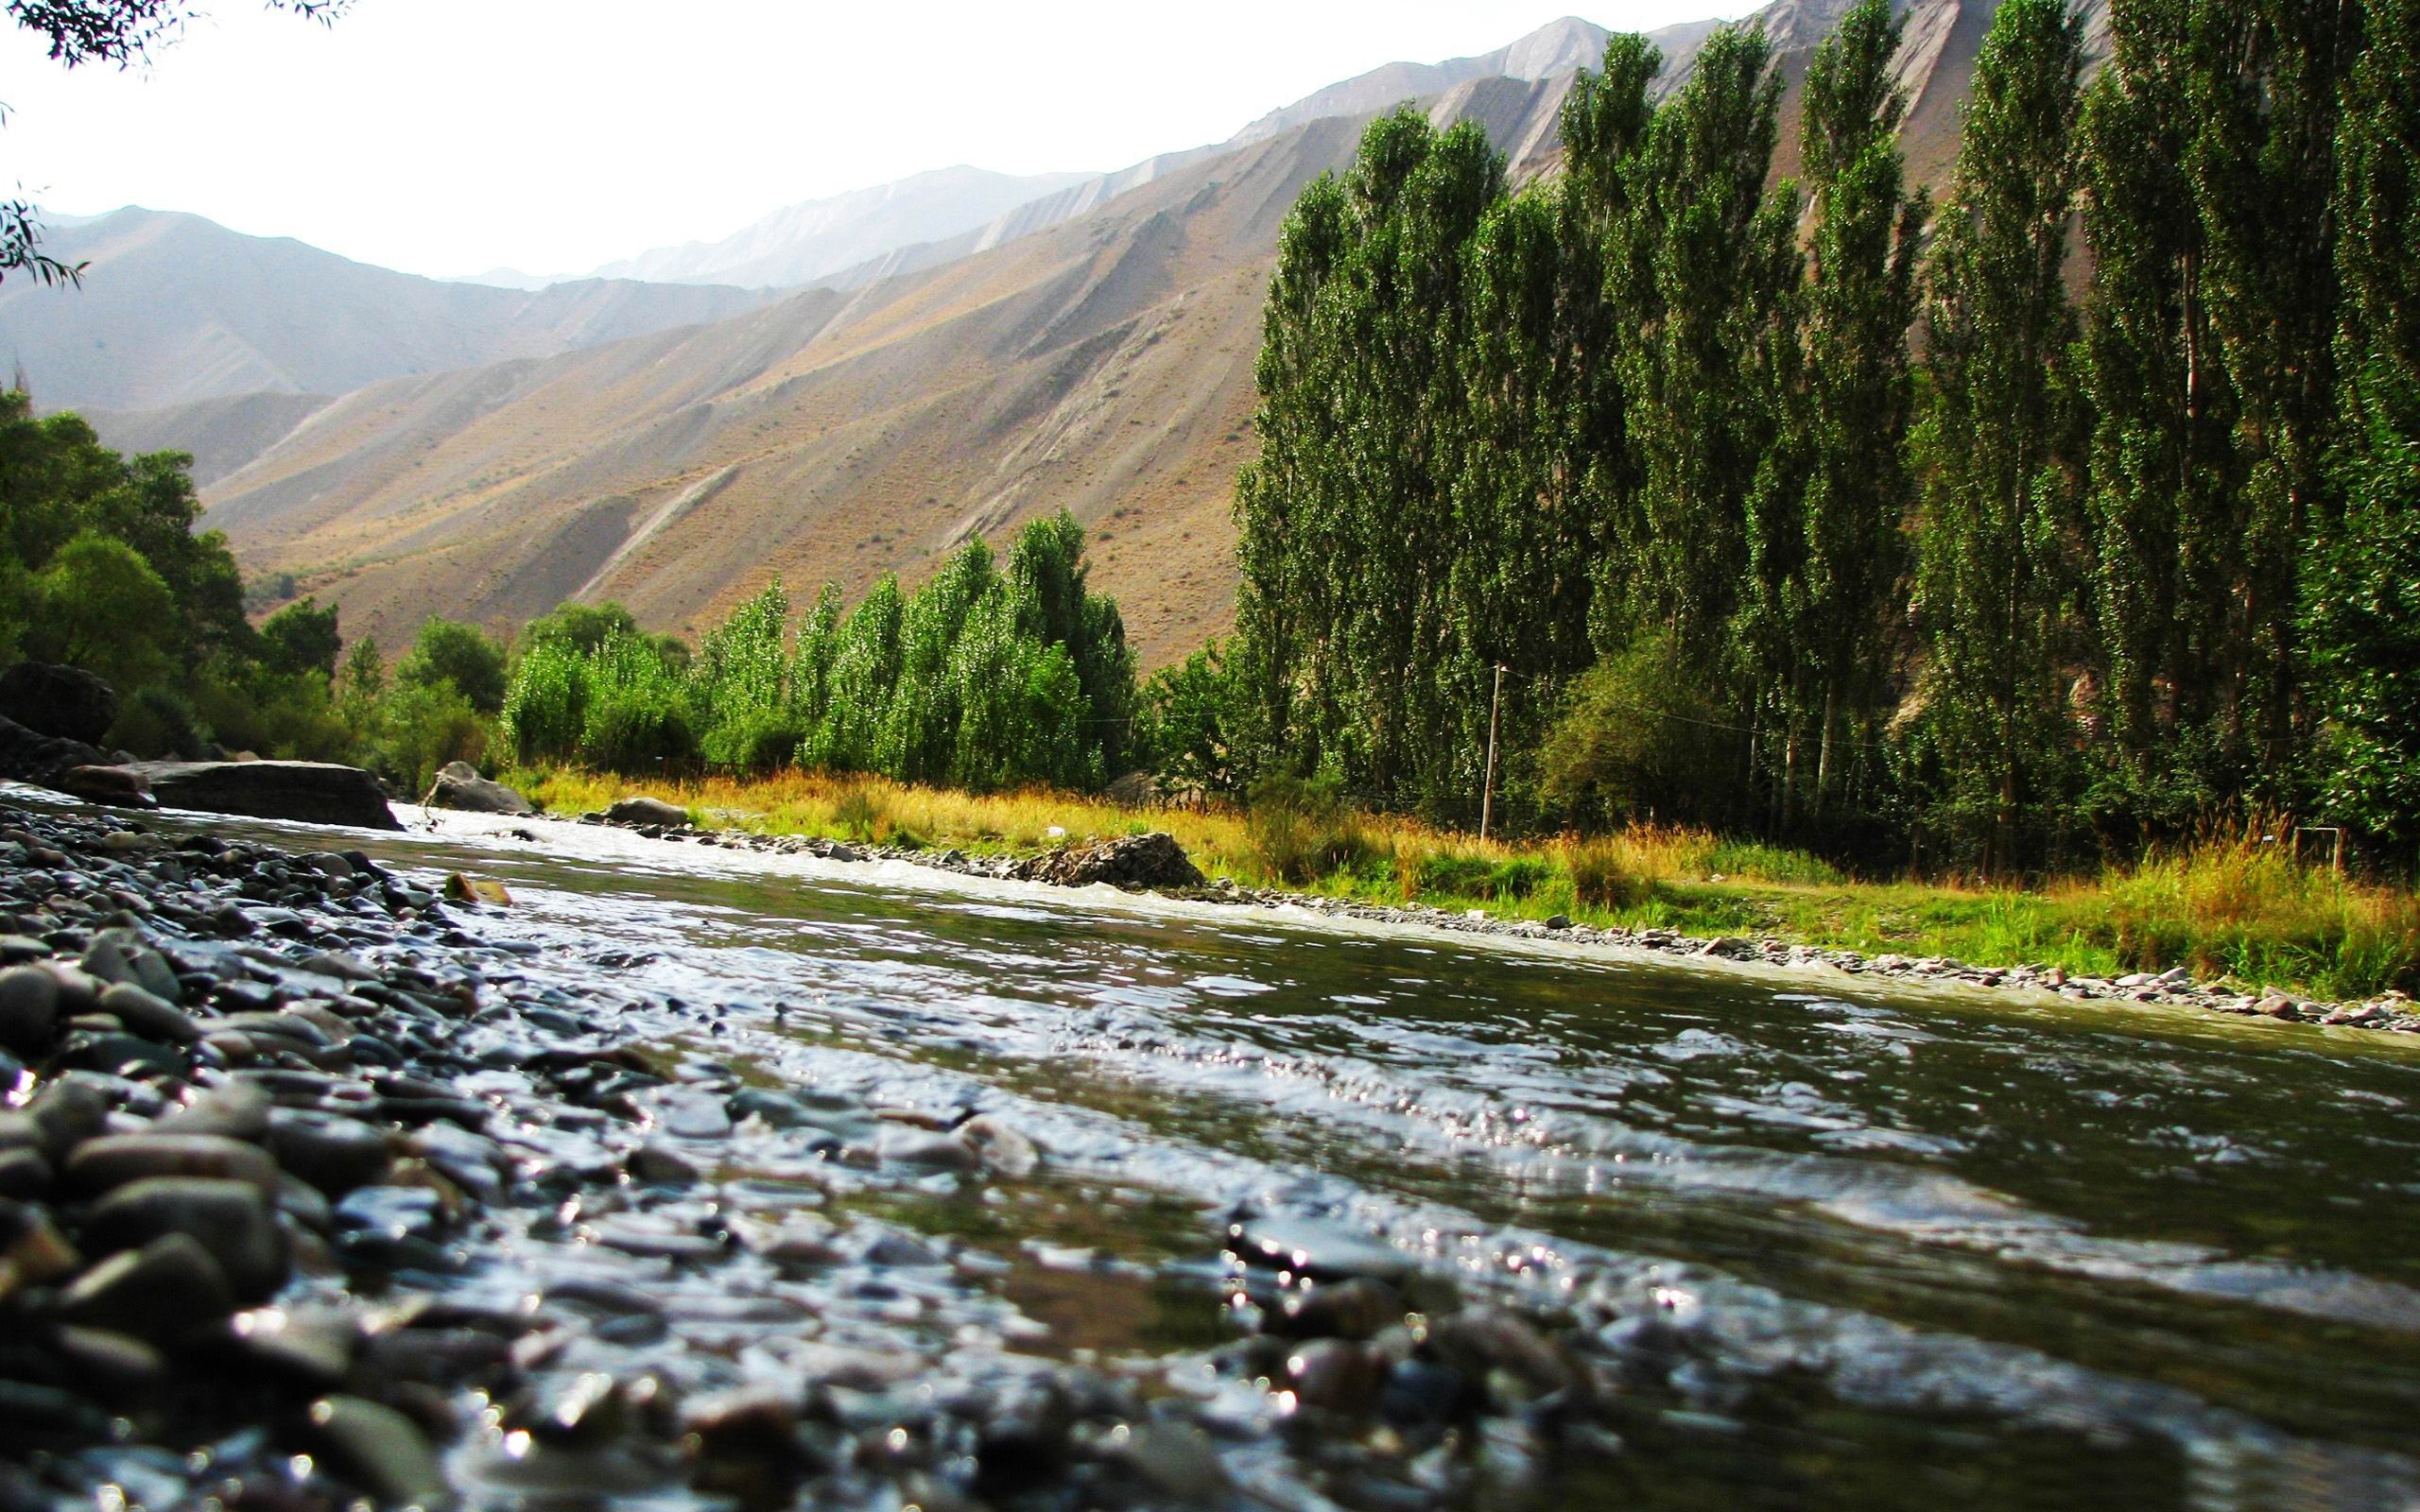 ... -Beautiful river landscape photography - 2560x1600 wallpaper download: www.10wallpaper.com/down/Chaloos_iran_mr-Beautiful_river_landscape...